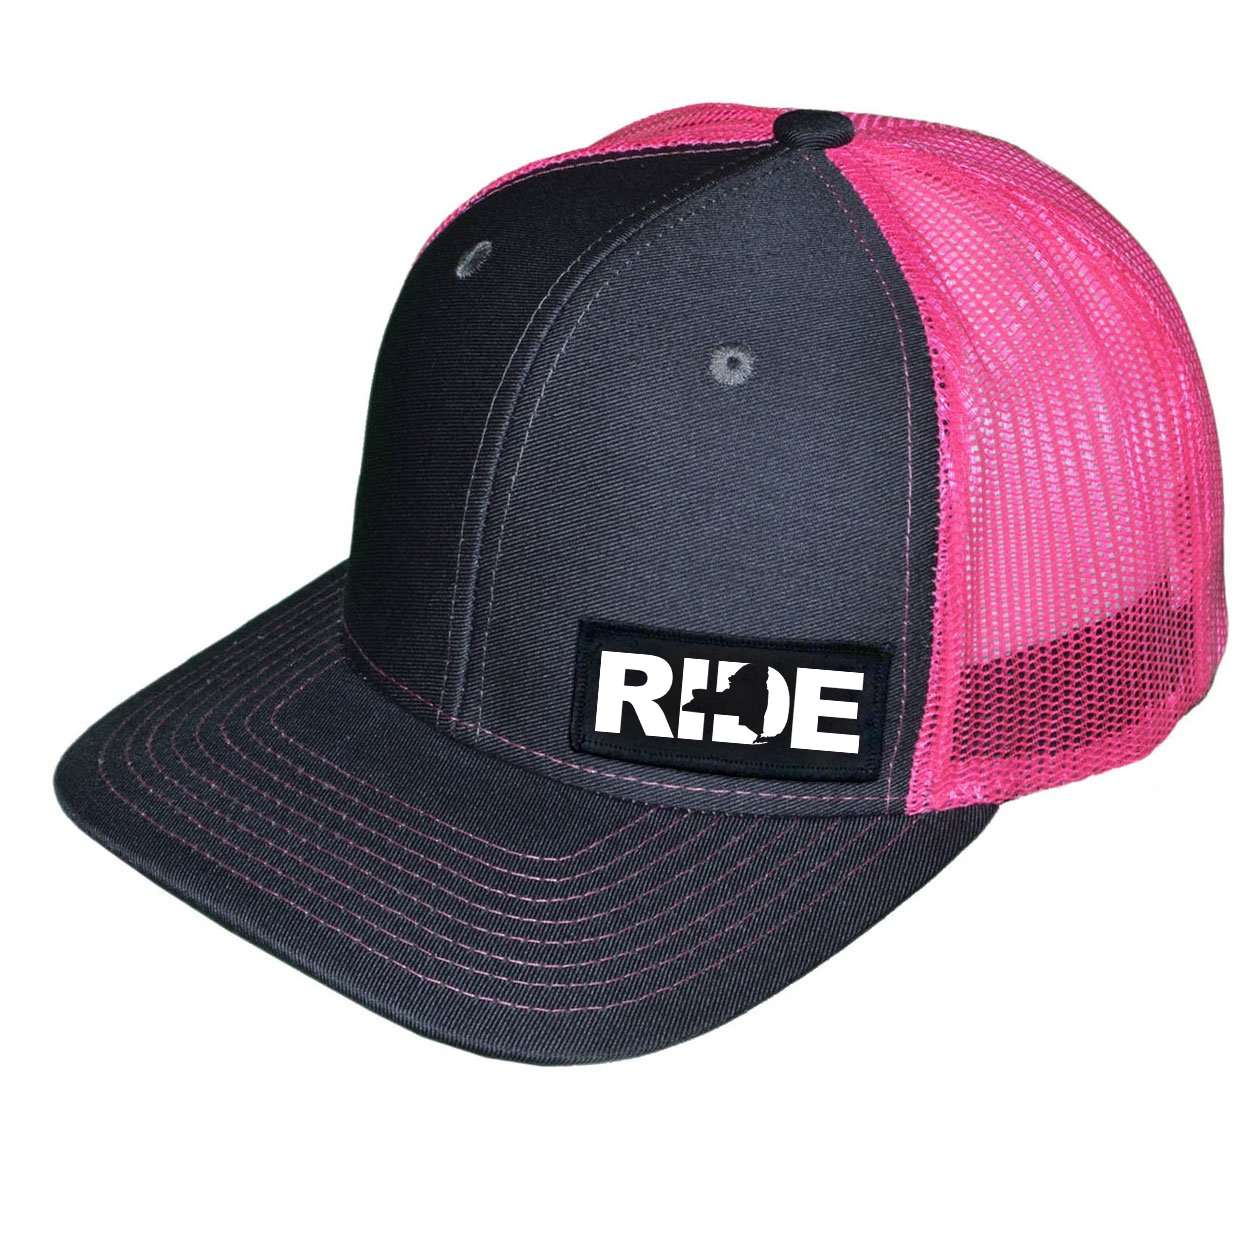 Ride New York Night Out Woven Patch Snapback Trucker Hat Dark Gray/Neon Pink (White Logo)